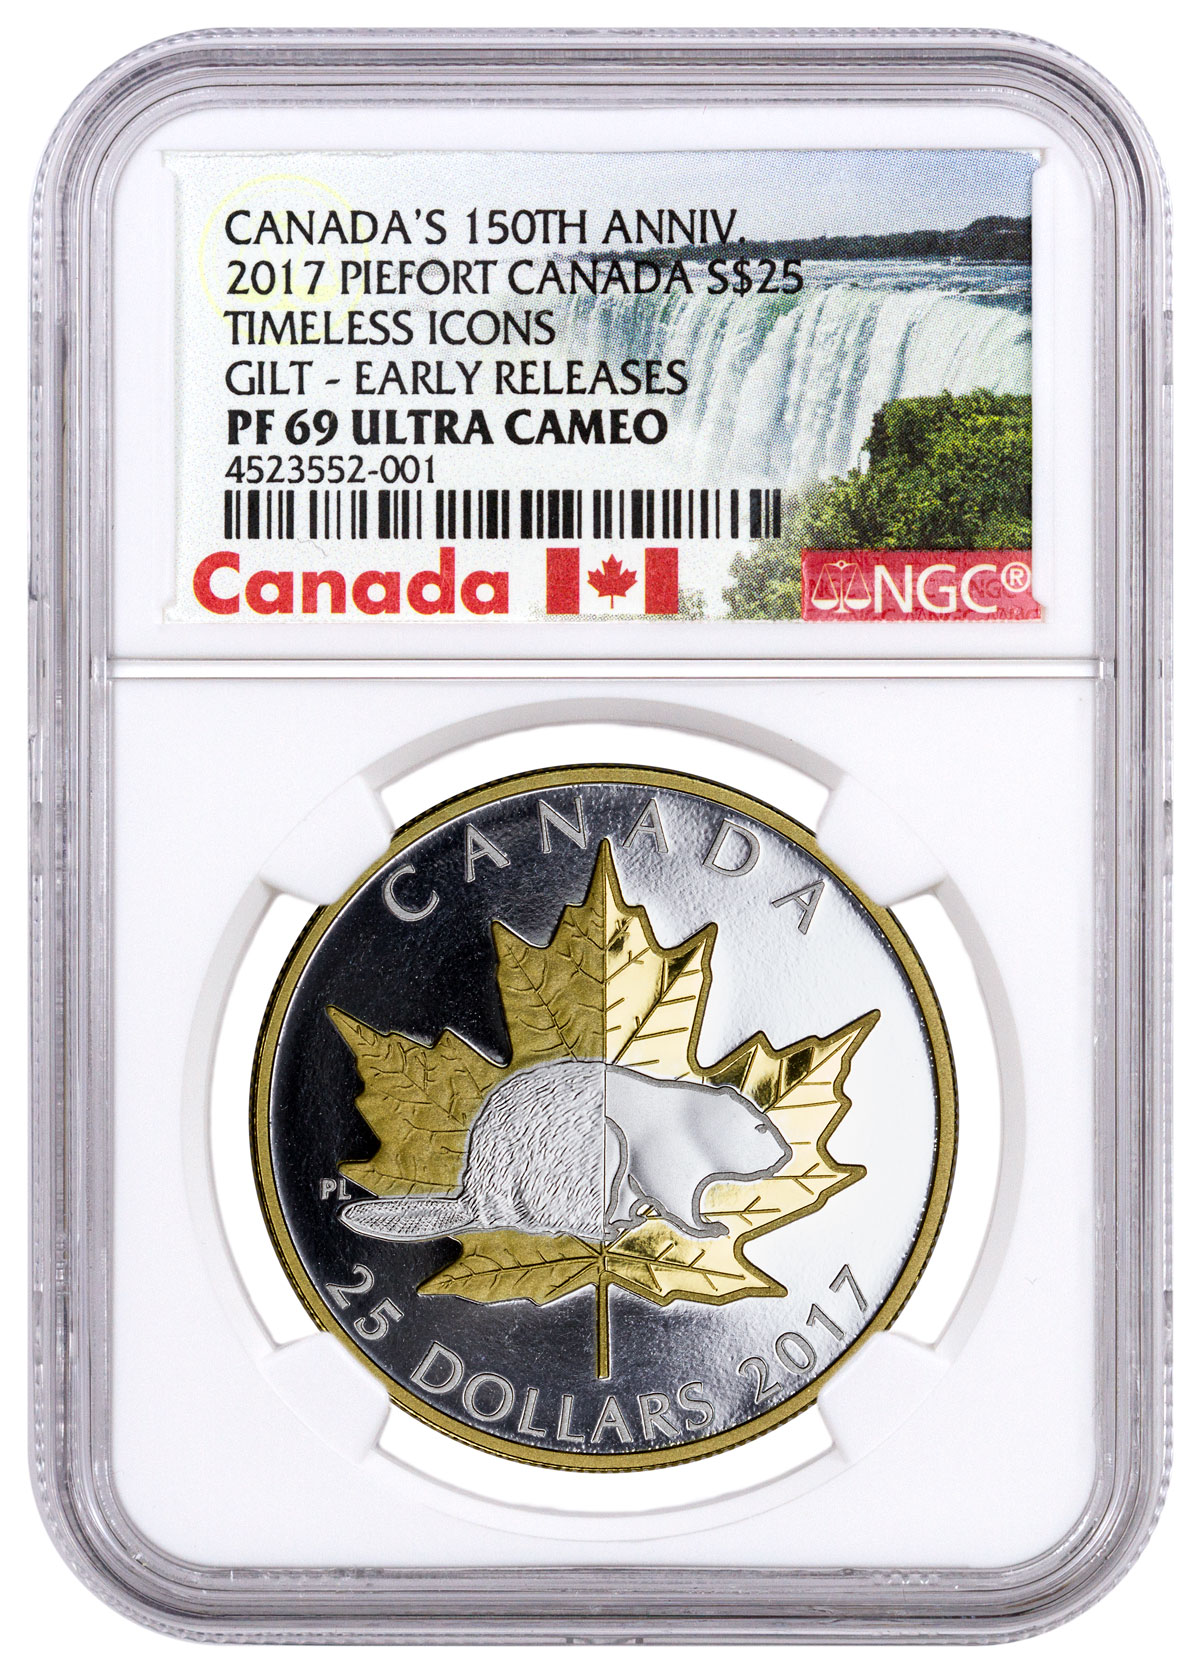 2017 Canada Timeless Icons - Piedfort Maple 1 oz Silver Gilt Proof $25 NGC PF69 UC ER (Exclusive Canada Label)